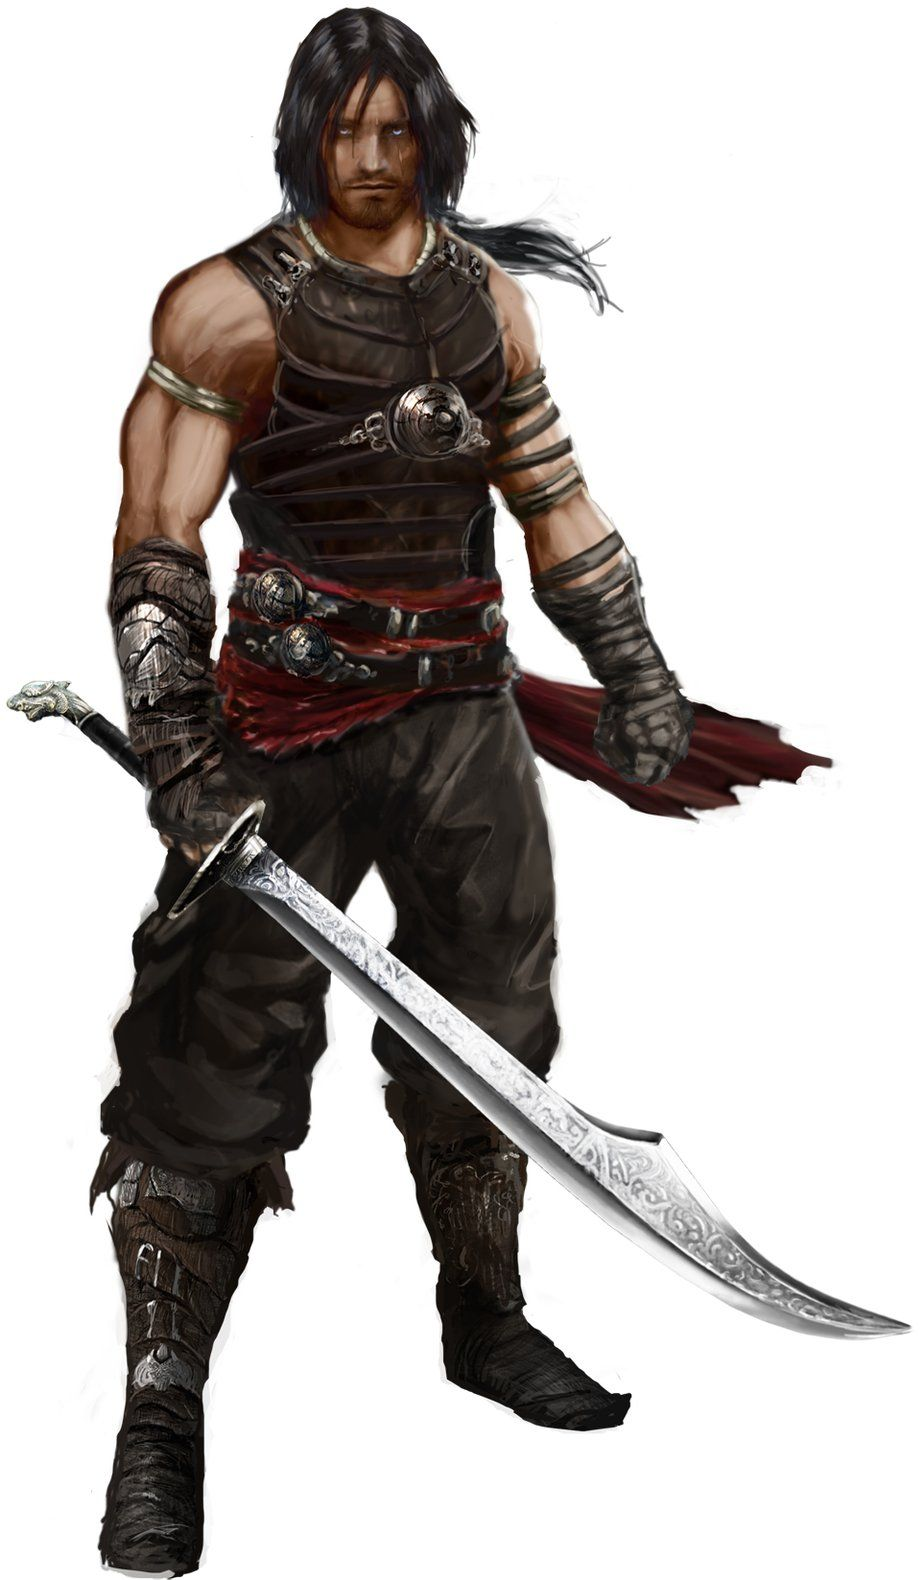 52 Prince Of Persia Ideas Prince Of Persia Persia Prince